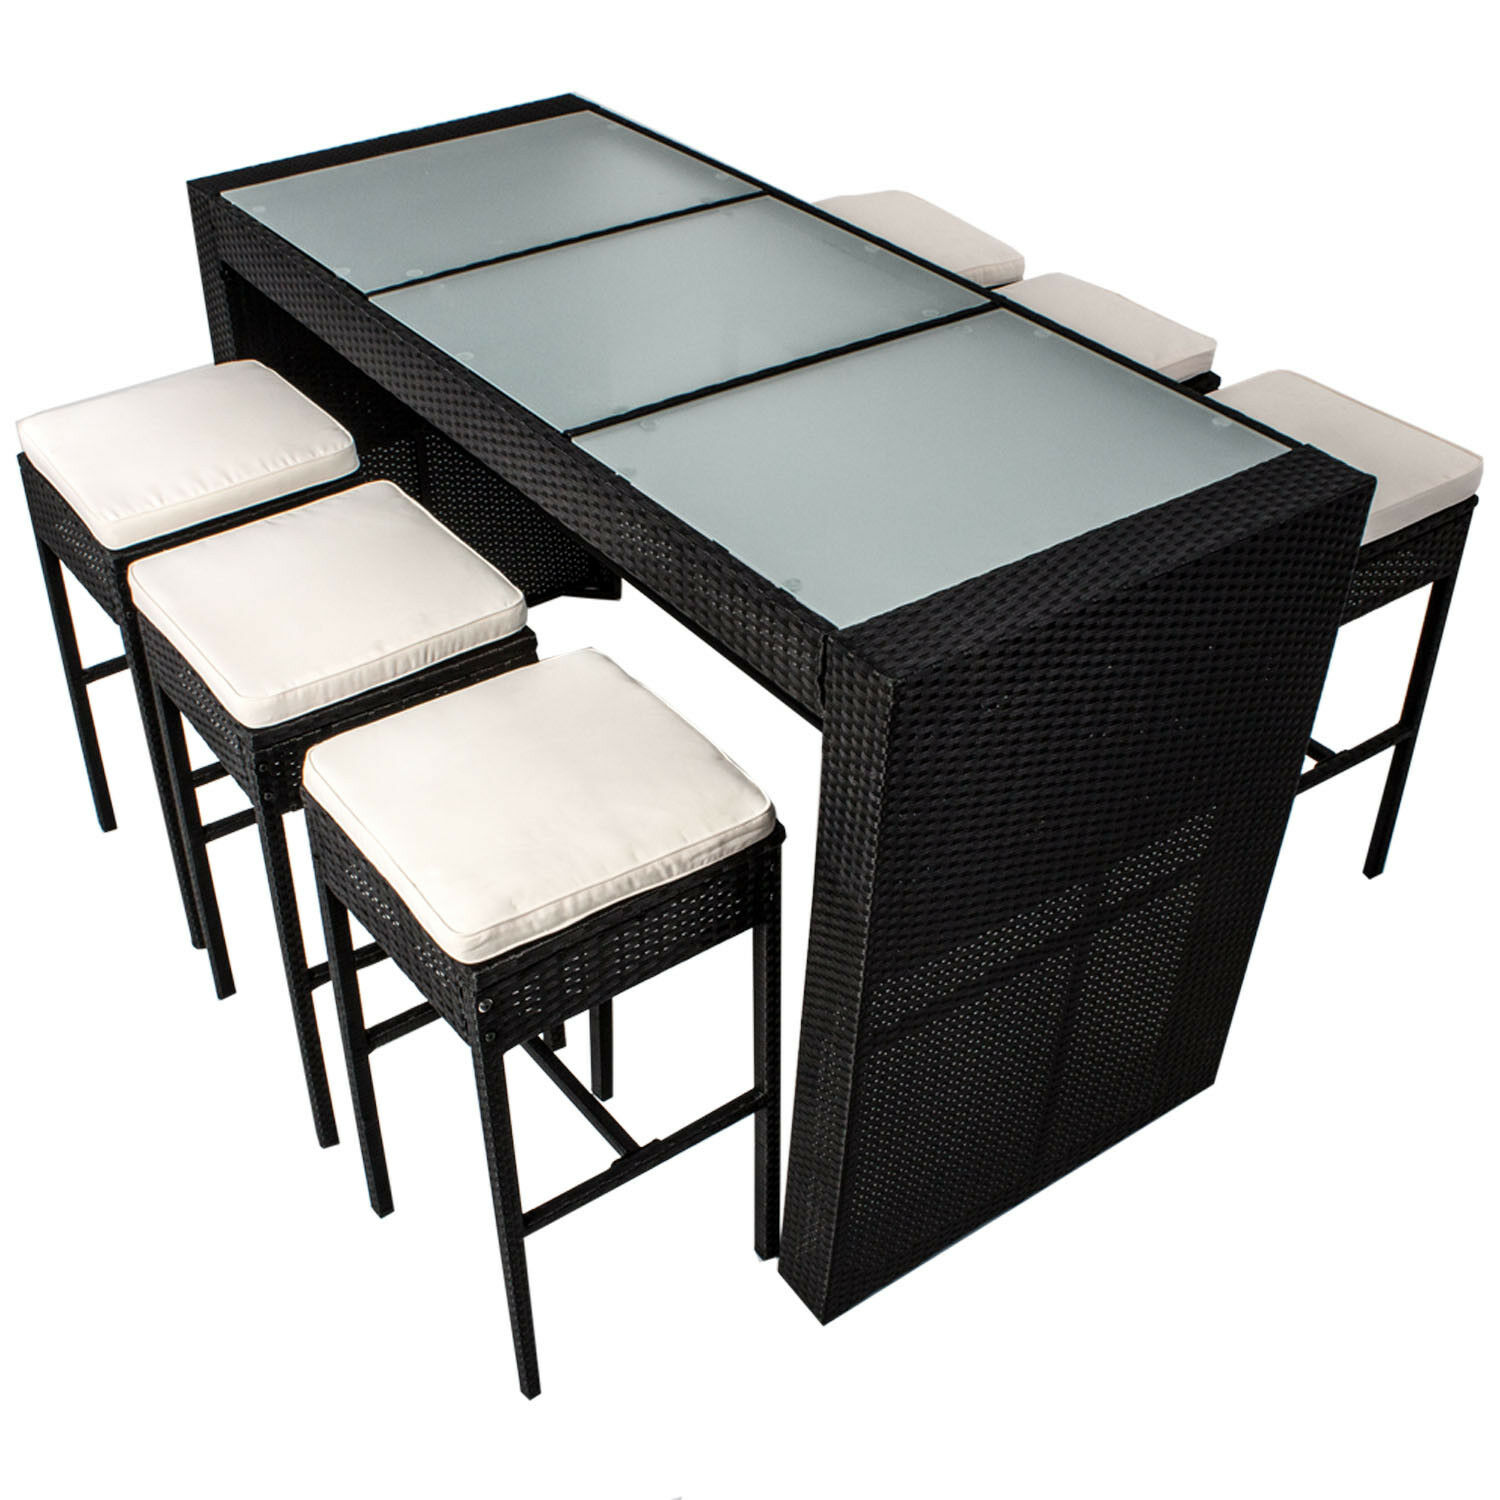 gartenm bel bar set polyrattan lounge gartenset rattan sitzgruppe garnitur neu eur 279 95. Black Bedroom Furniture Sets. Home Design Ideas